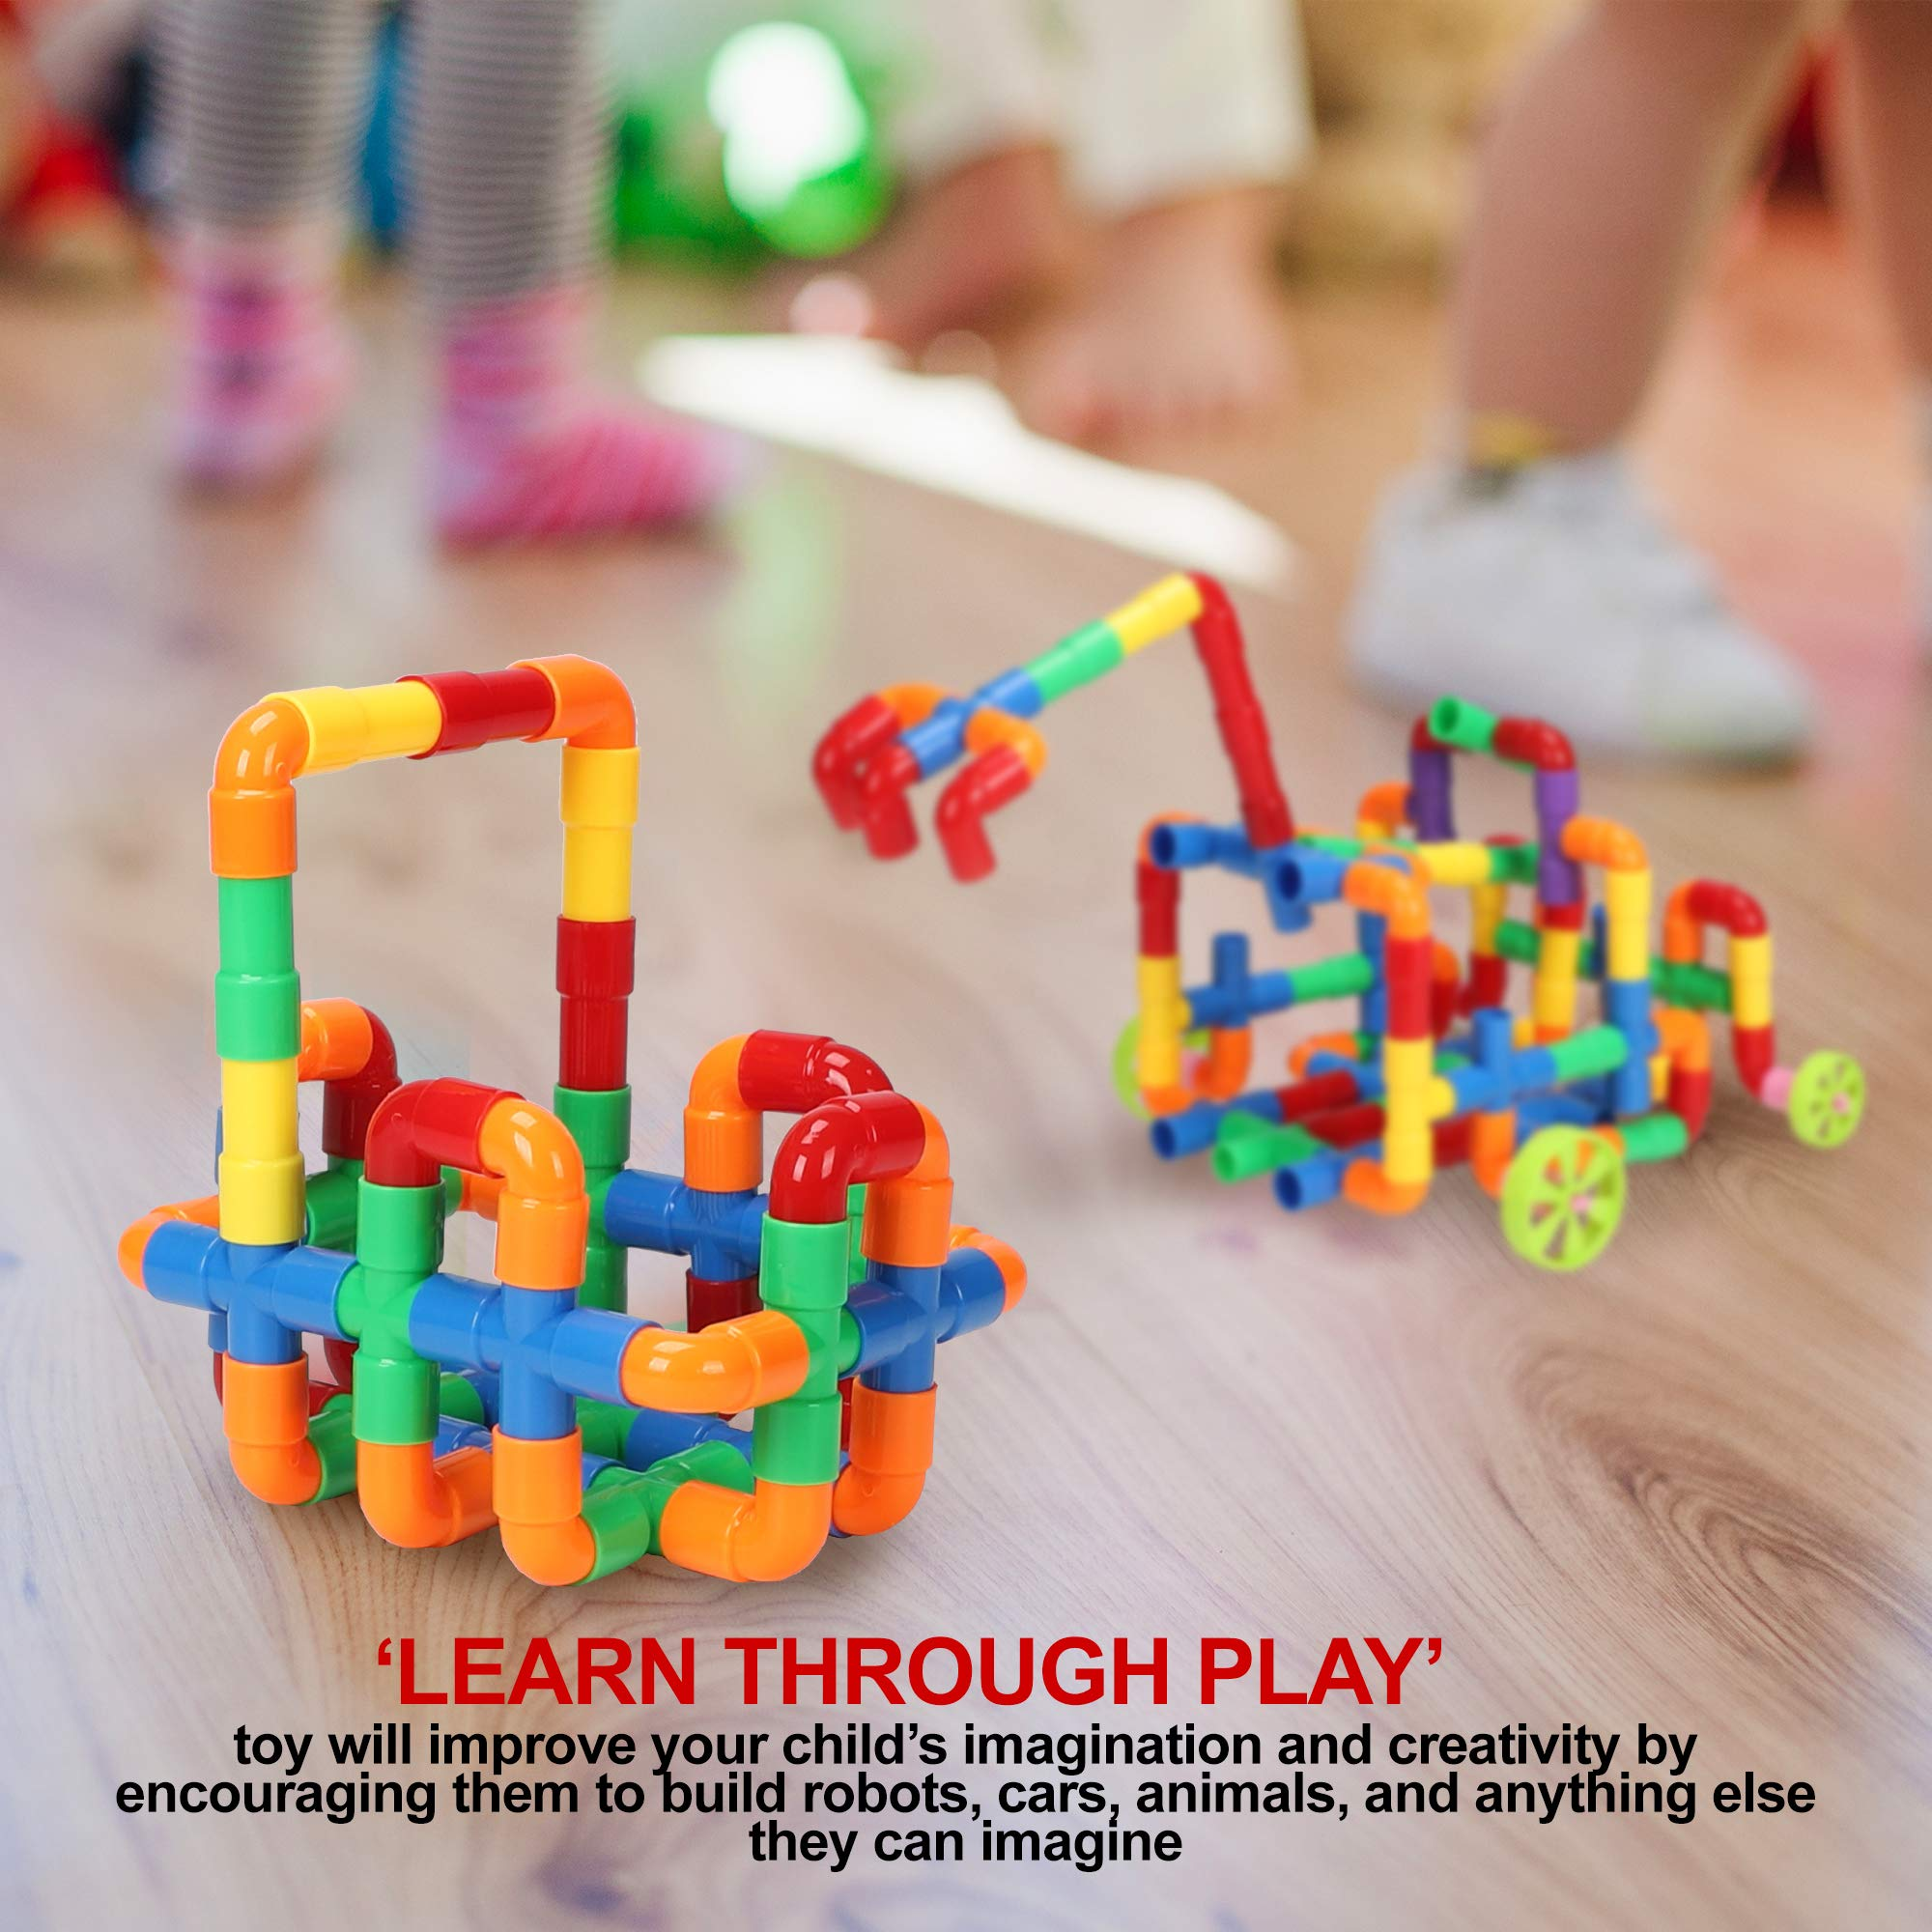 STEM Building Blocks Toy for Kids, Educational Toddlers Toddler Toy Kit, Constructions Toys for 3 4 5 6 7 8 Years Age Boys and Girls – Creativity Kids Toys